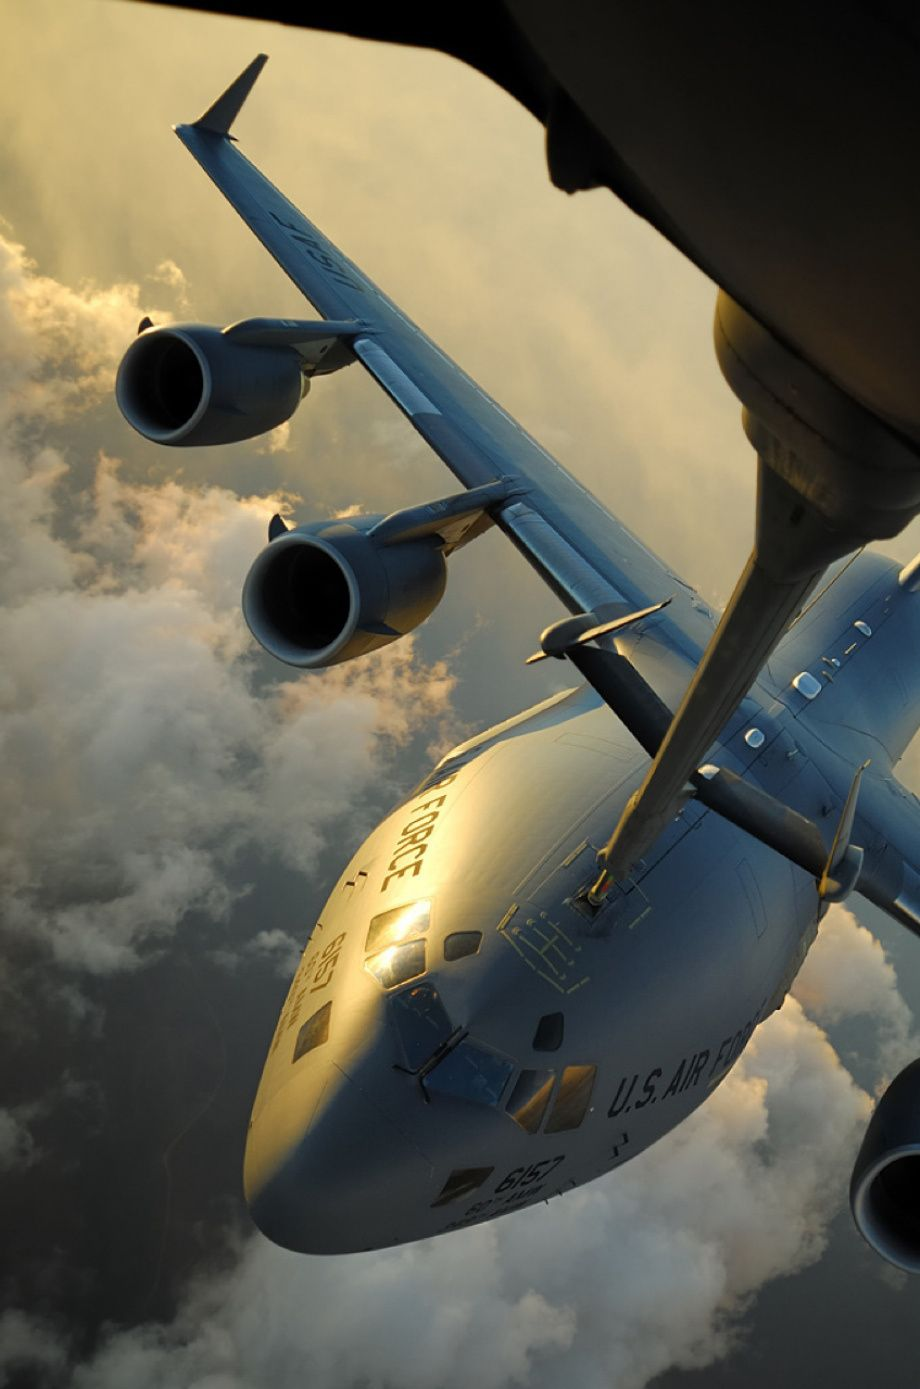 Wallpaper Photos Of The C 17 Globemaster Thebrigade With Images Aviation Military Aircraft